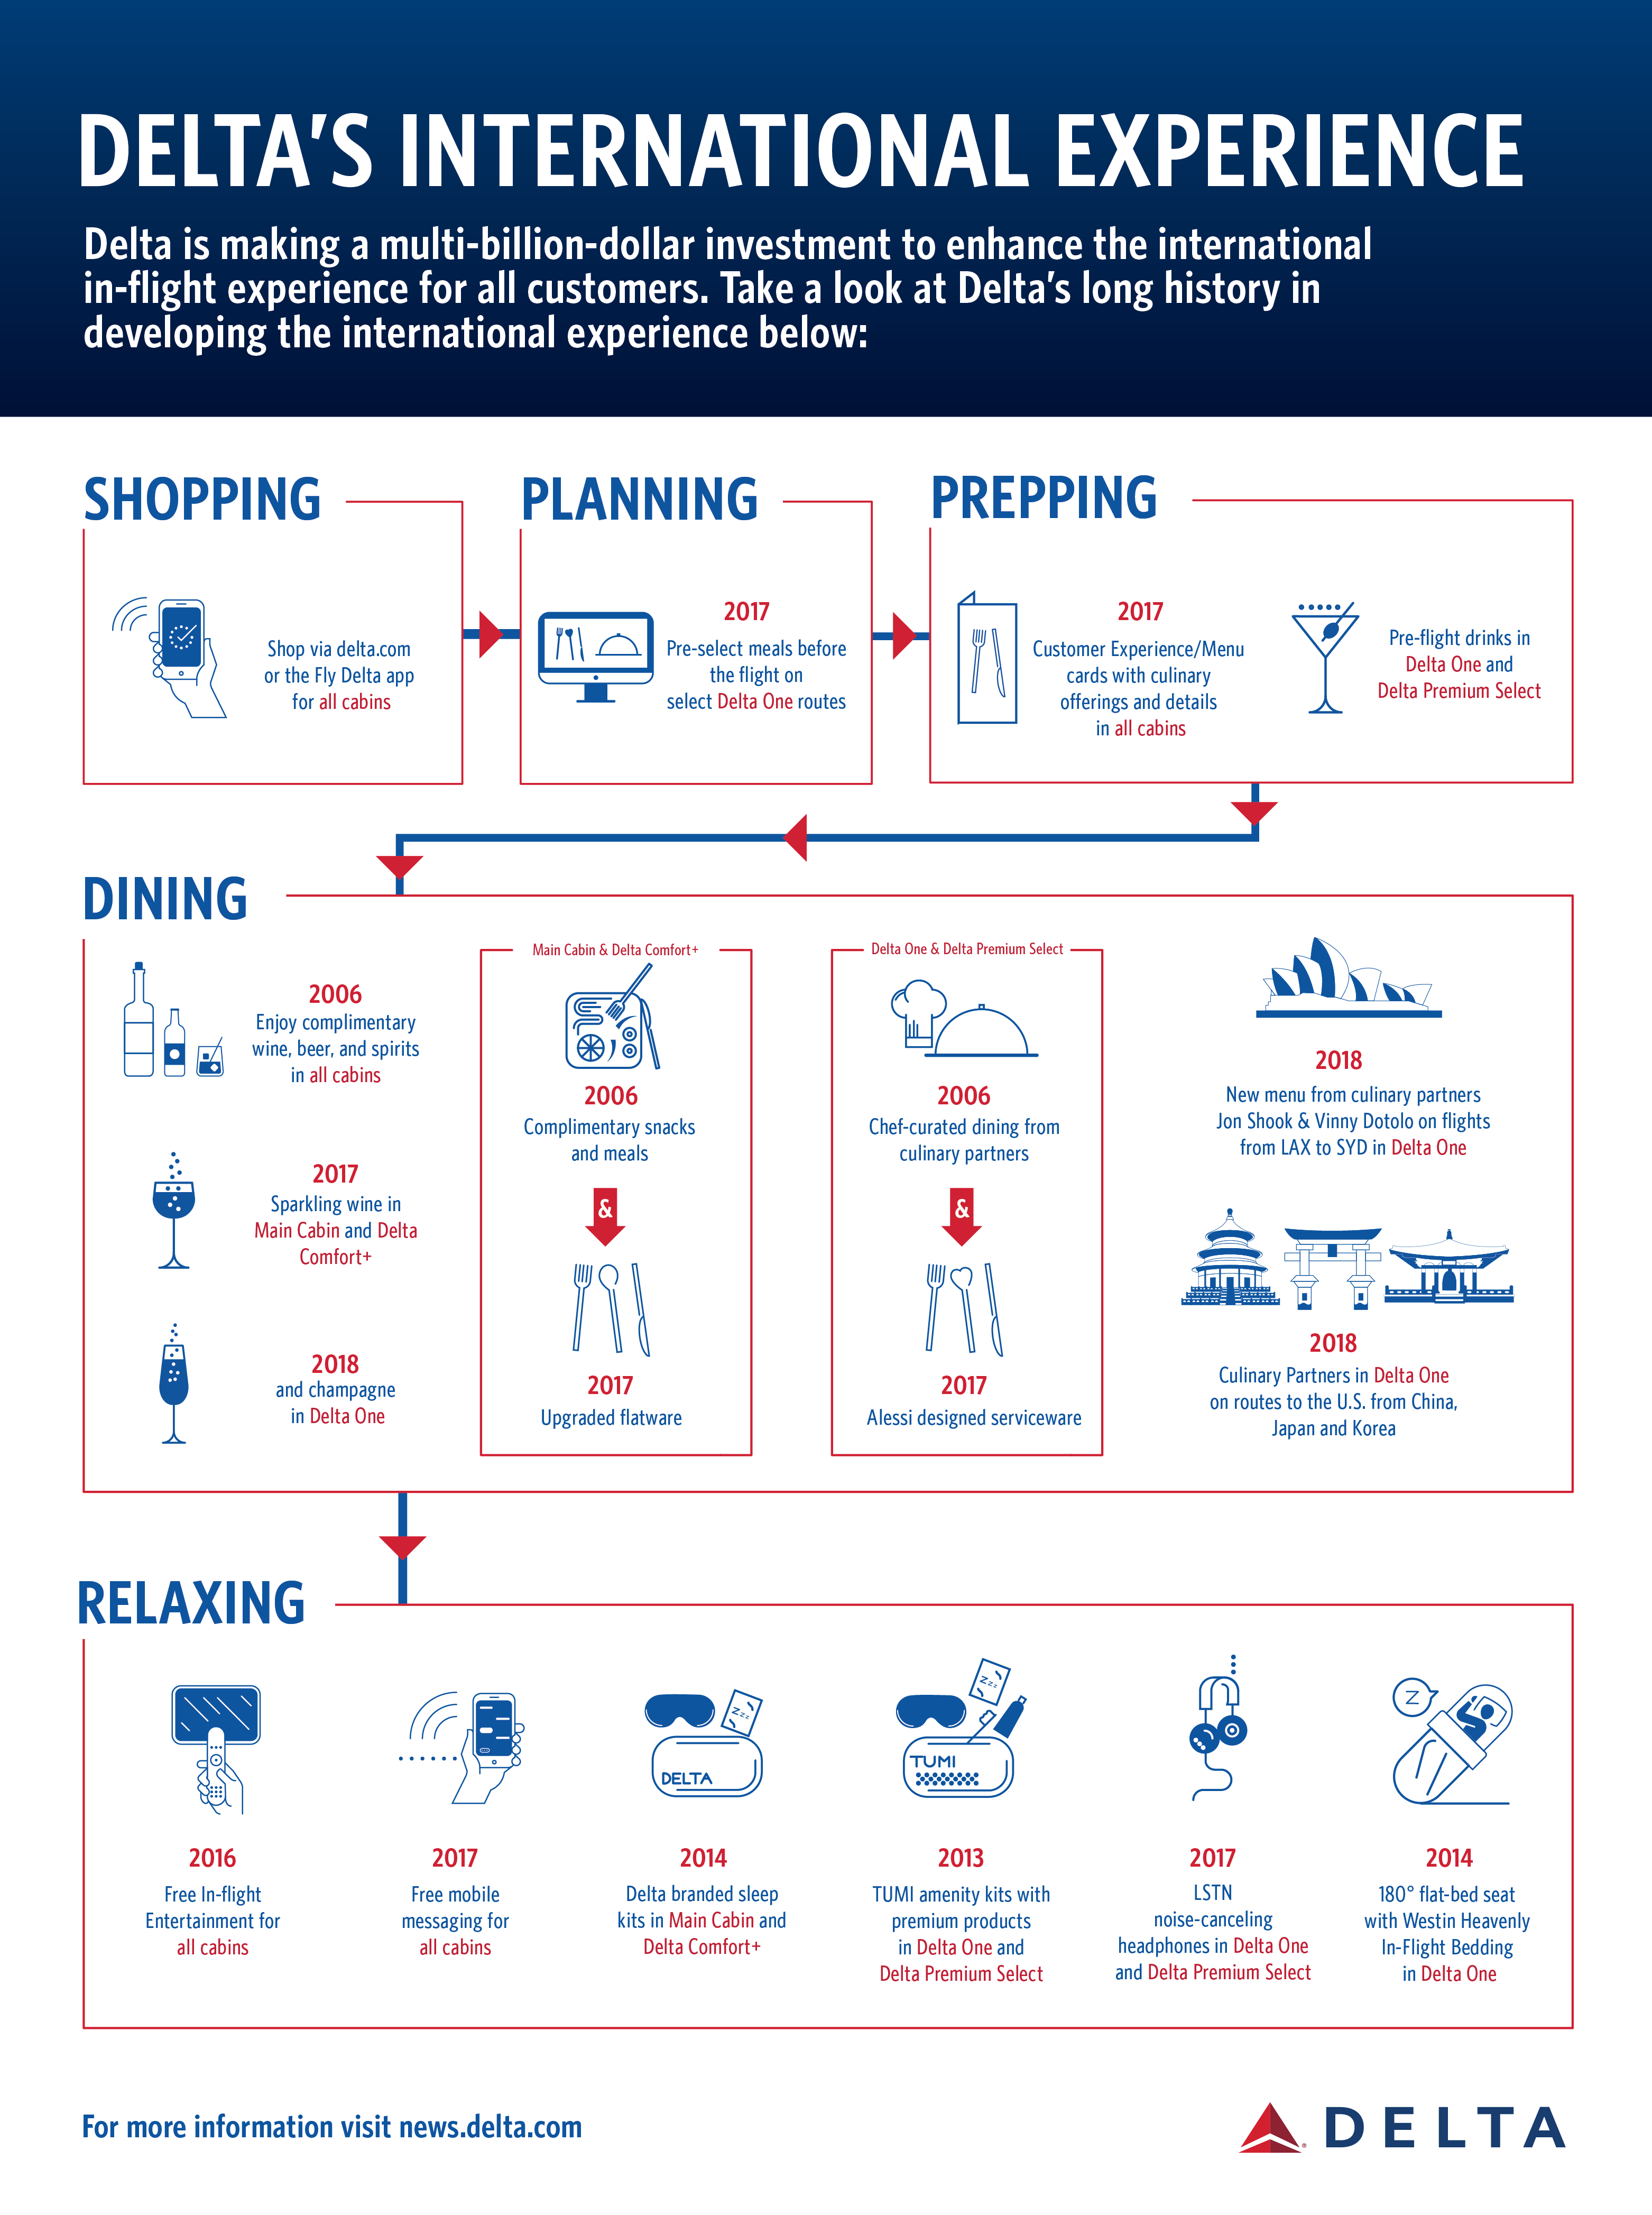 New Main Cabin, Delta One meal experiences channel foodie